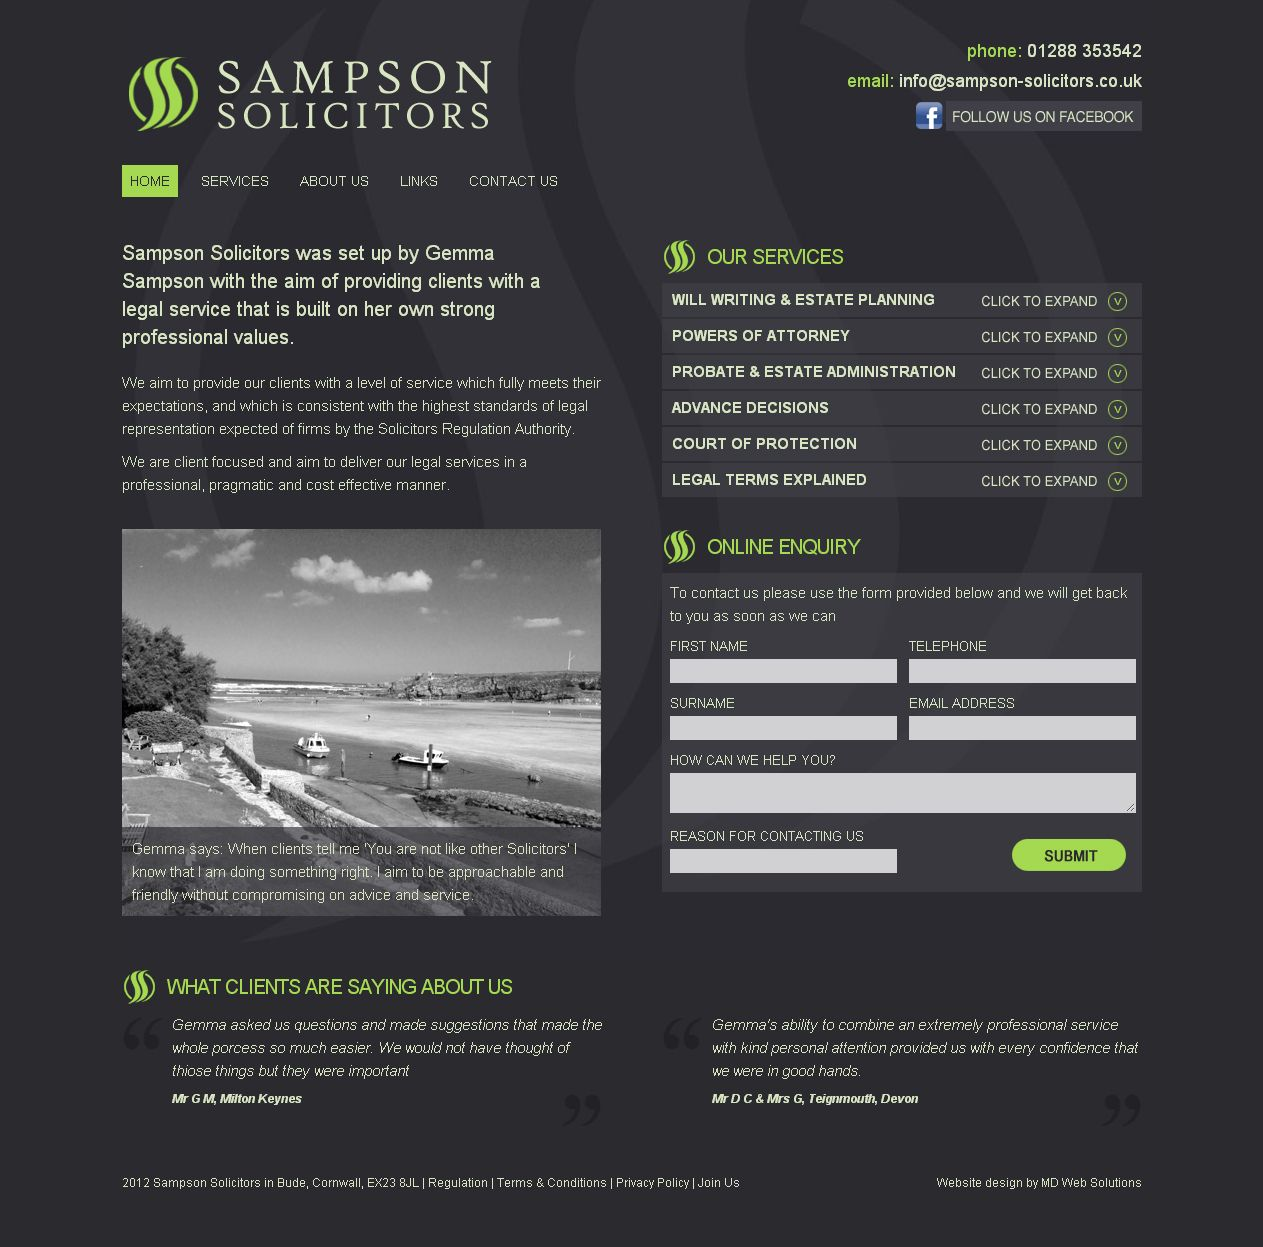 Pin On Website Design In Bude Cornwall